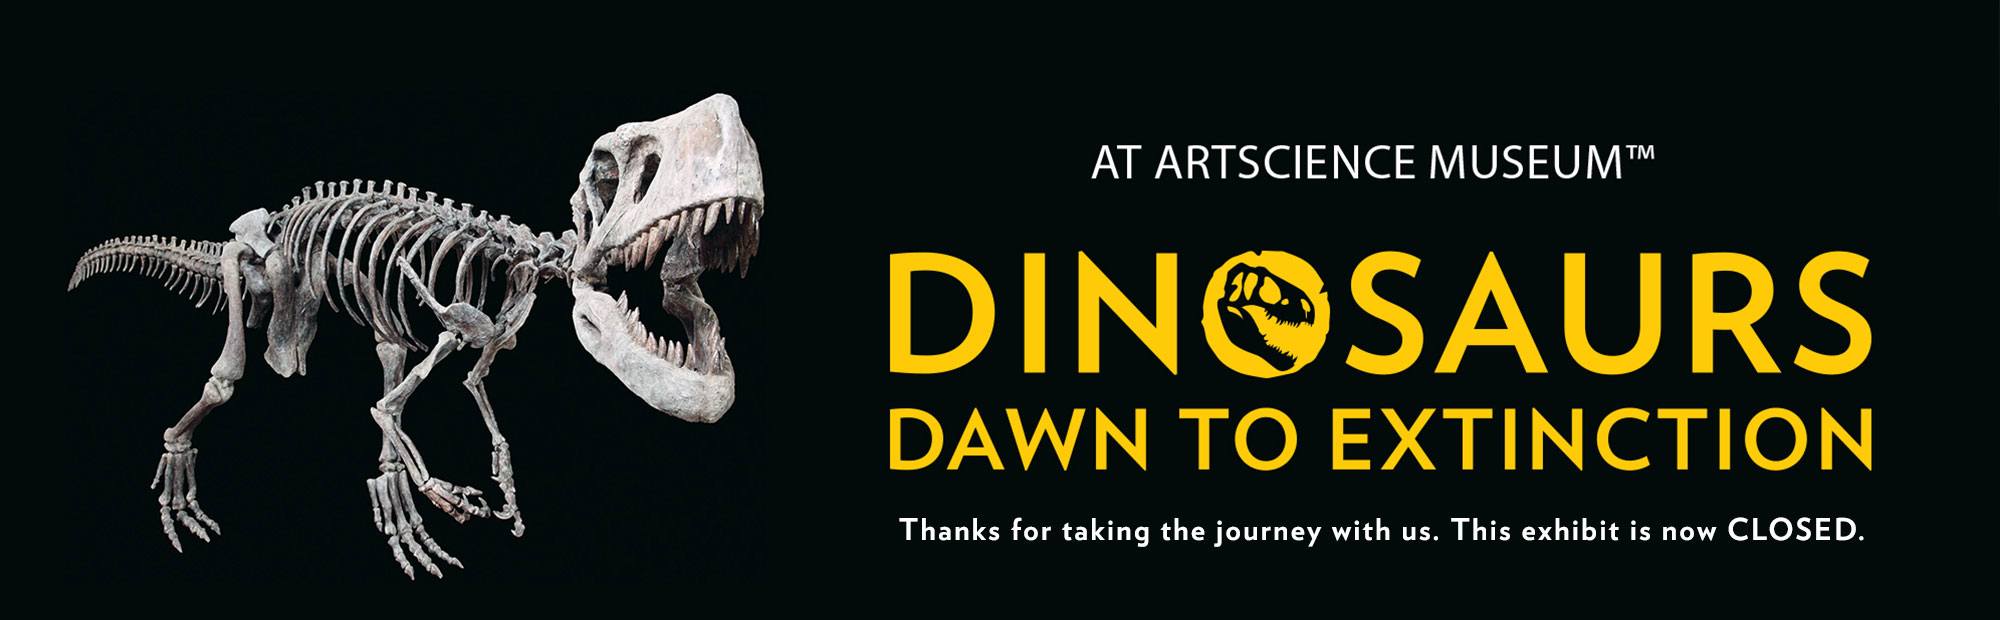 Past Exhibition - Dinosaurs in ArtScience Museum